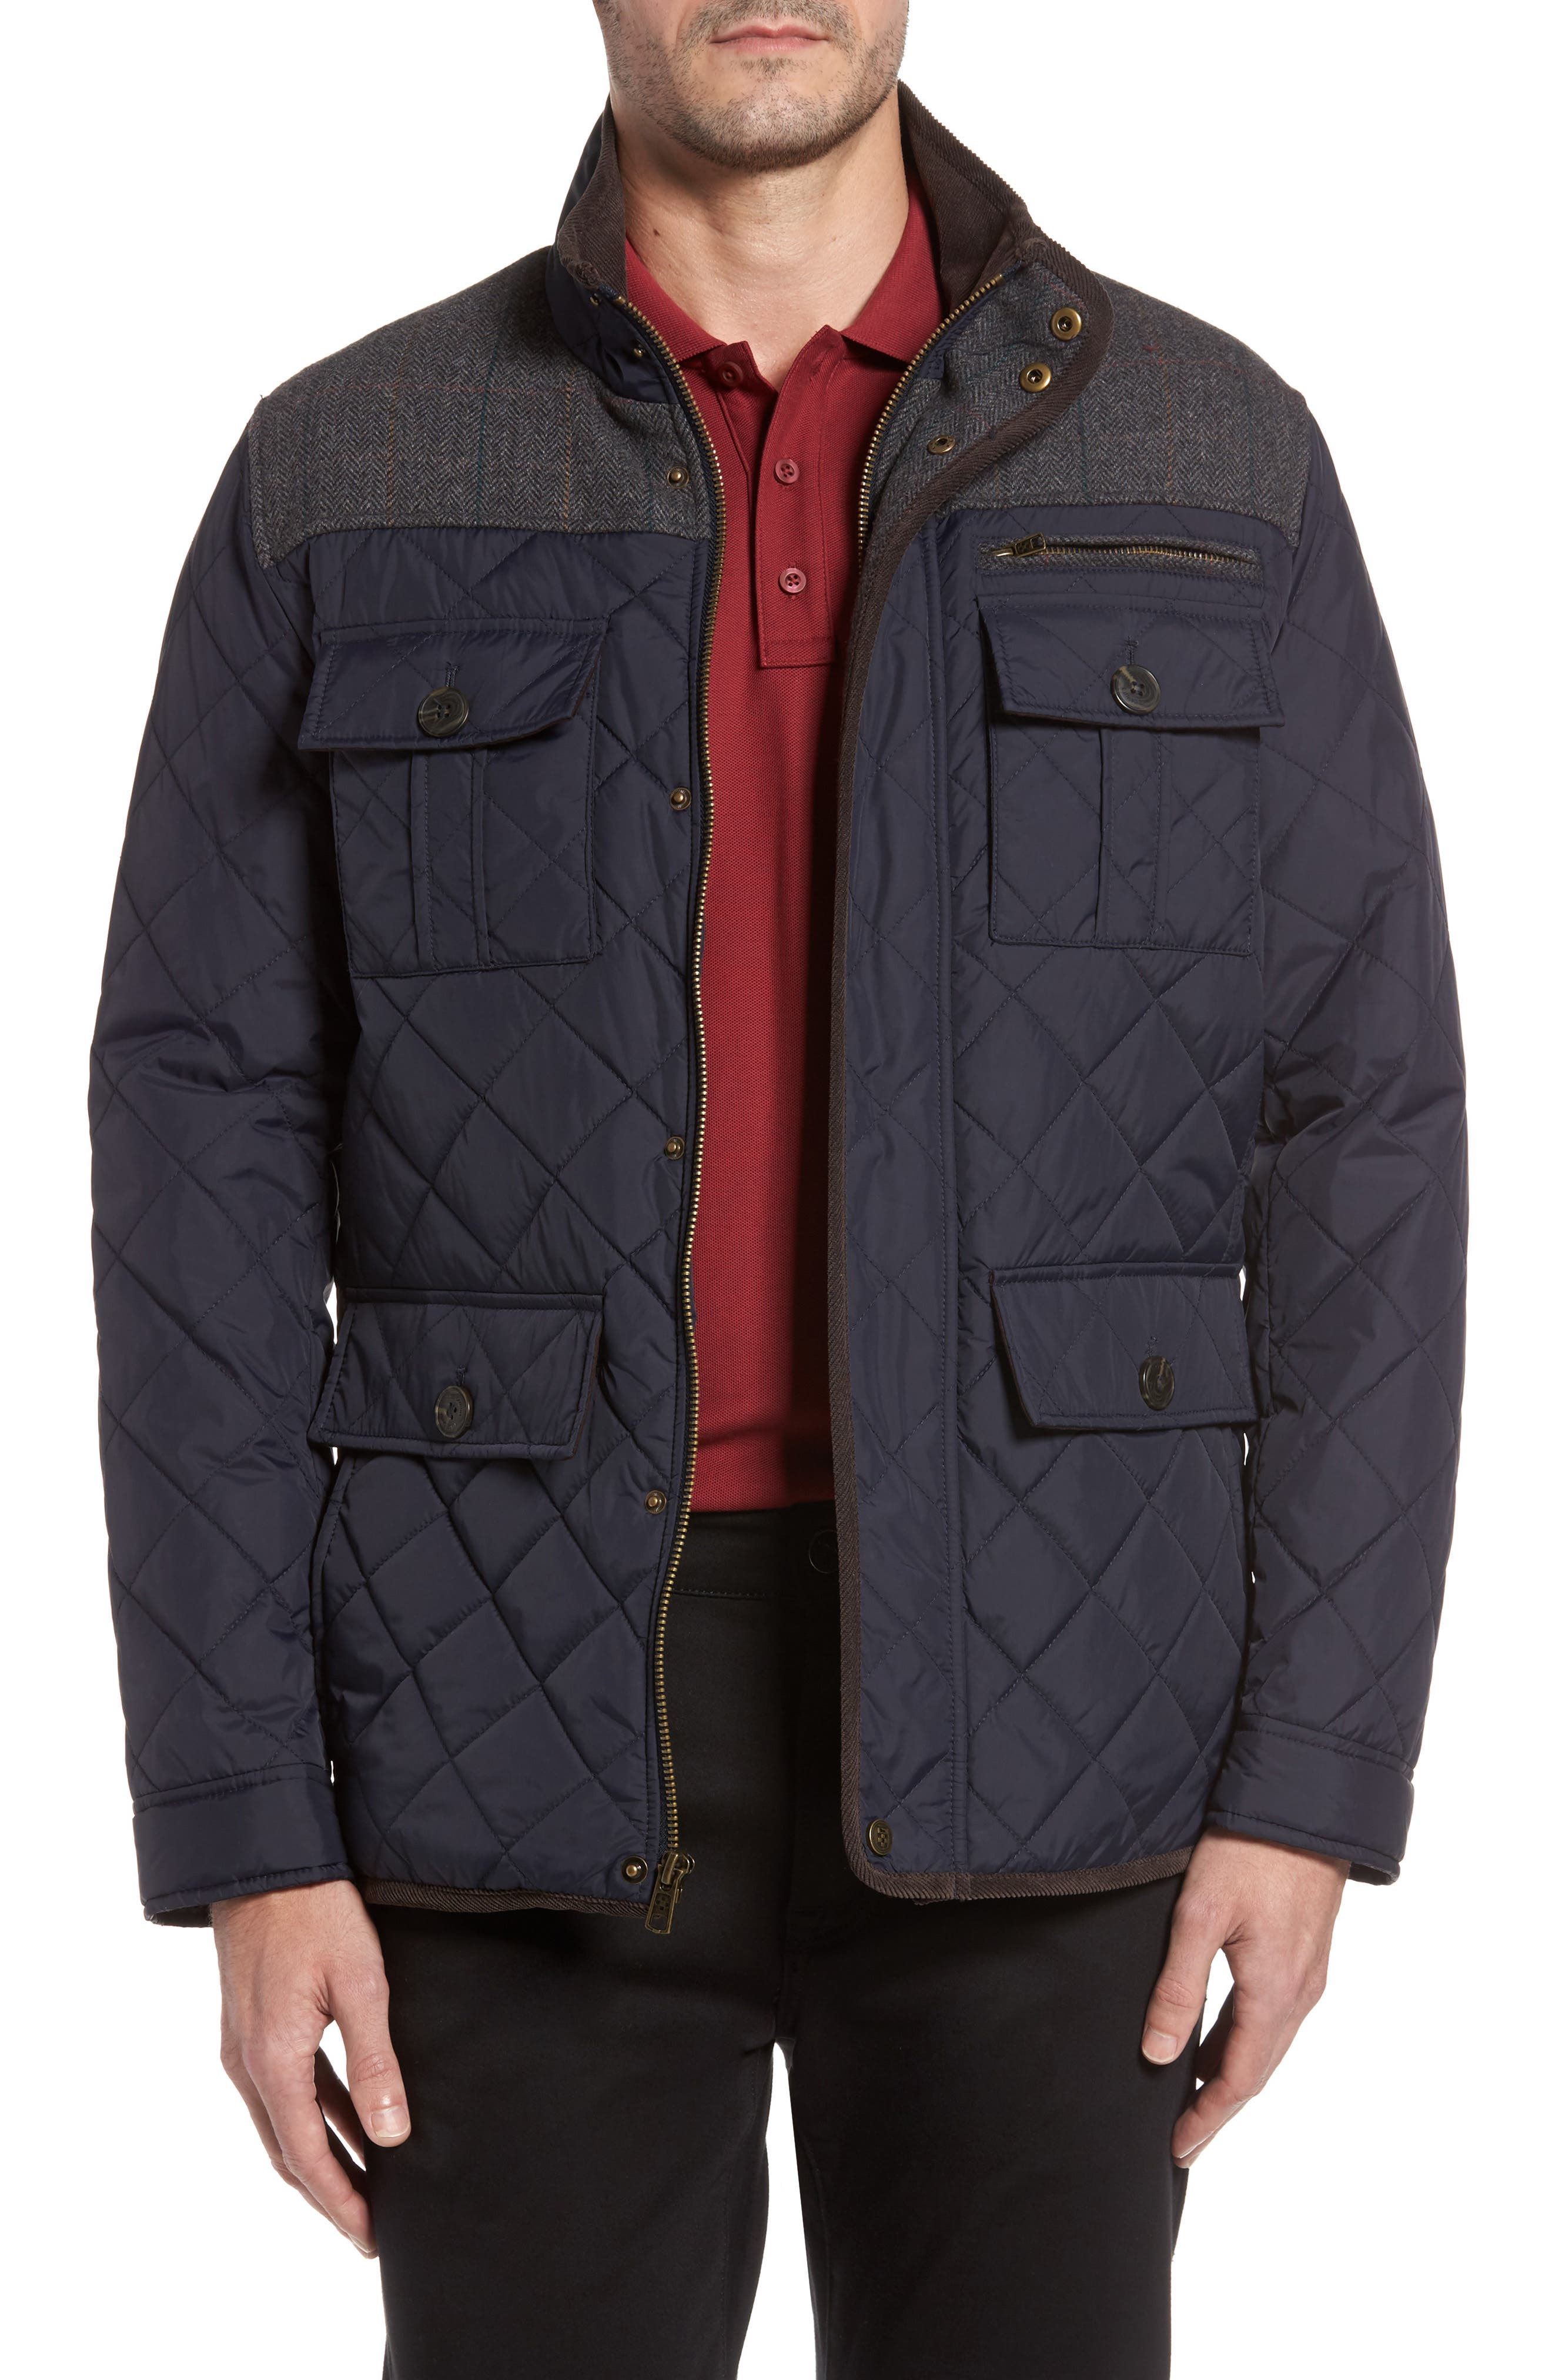 Alternate Image 1 Selected - Vince Camuto Diamond Quilted Full Zip Jacket (Online Only)